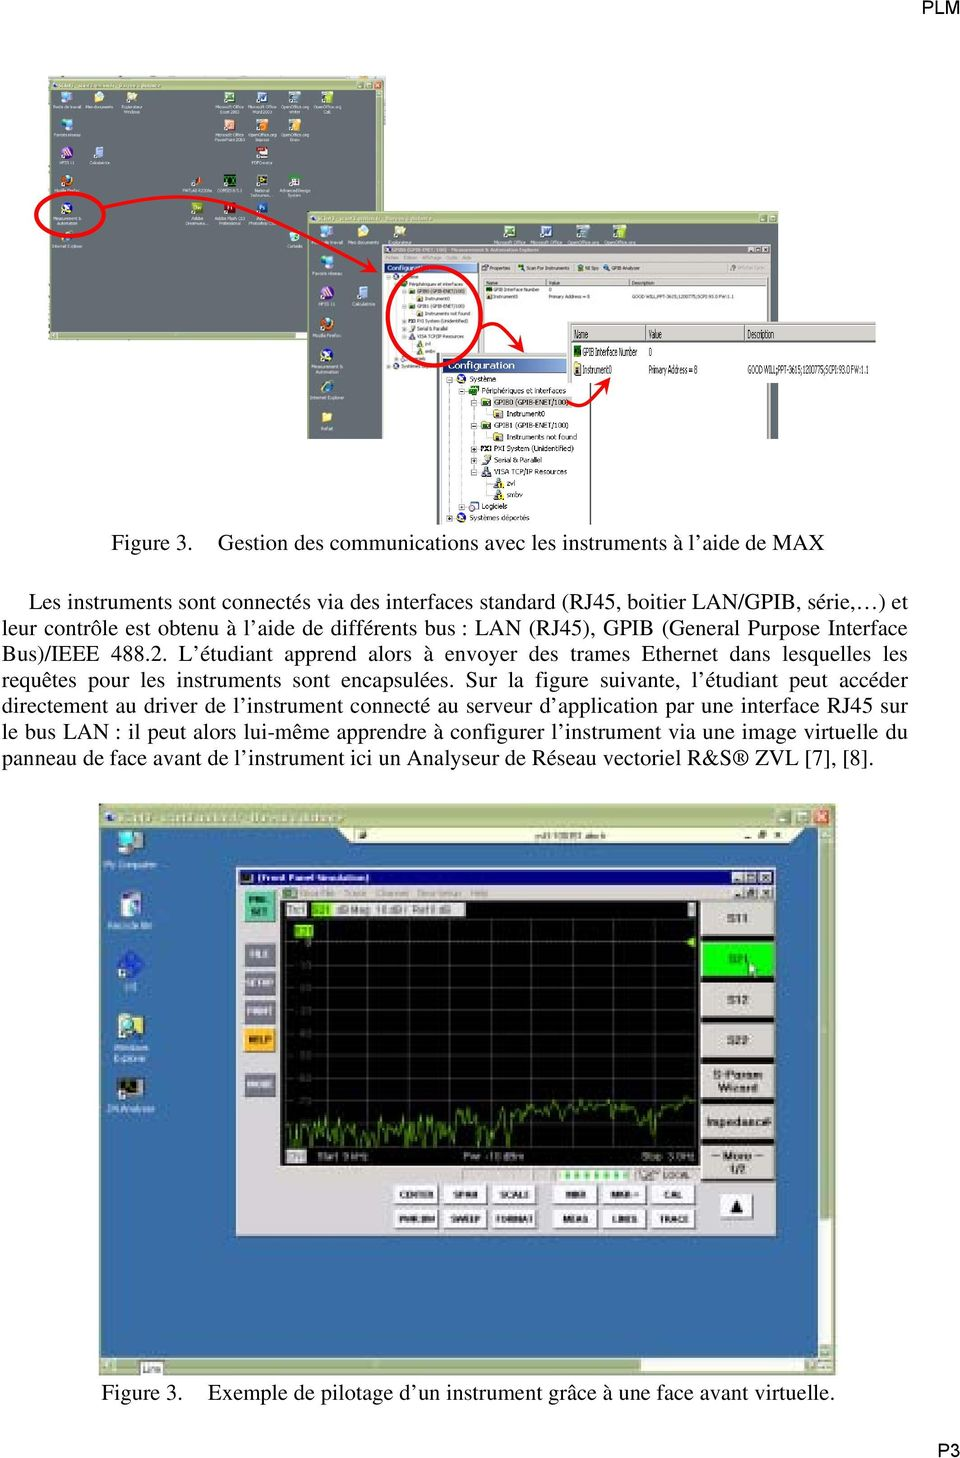 différents bus : LAN (RJ45), GPIB (General Purpose Interface Bus)/IEEE 488.2. L étudiant apprend alors à envoyer des trames Ethernet dans lesquelles les requêtes pour les instruments sont encapsulées.